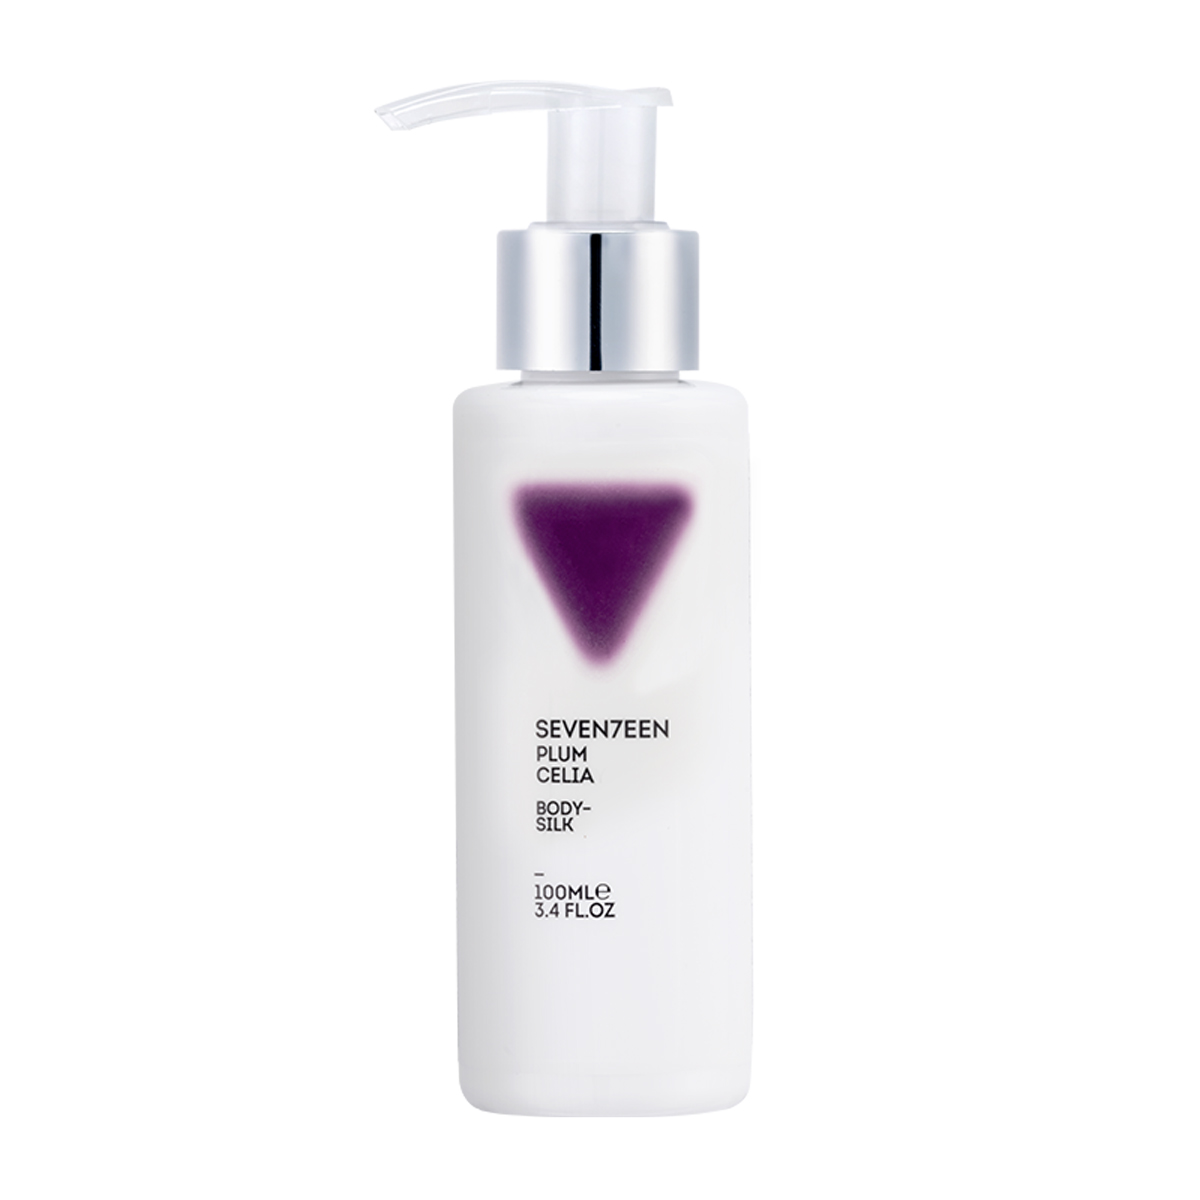 Plum Celia Body Silk 100ml